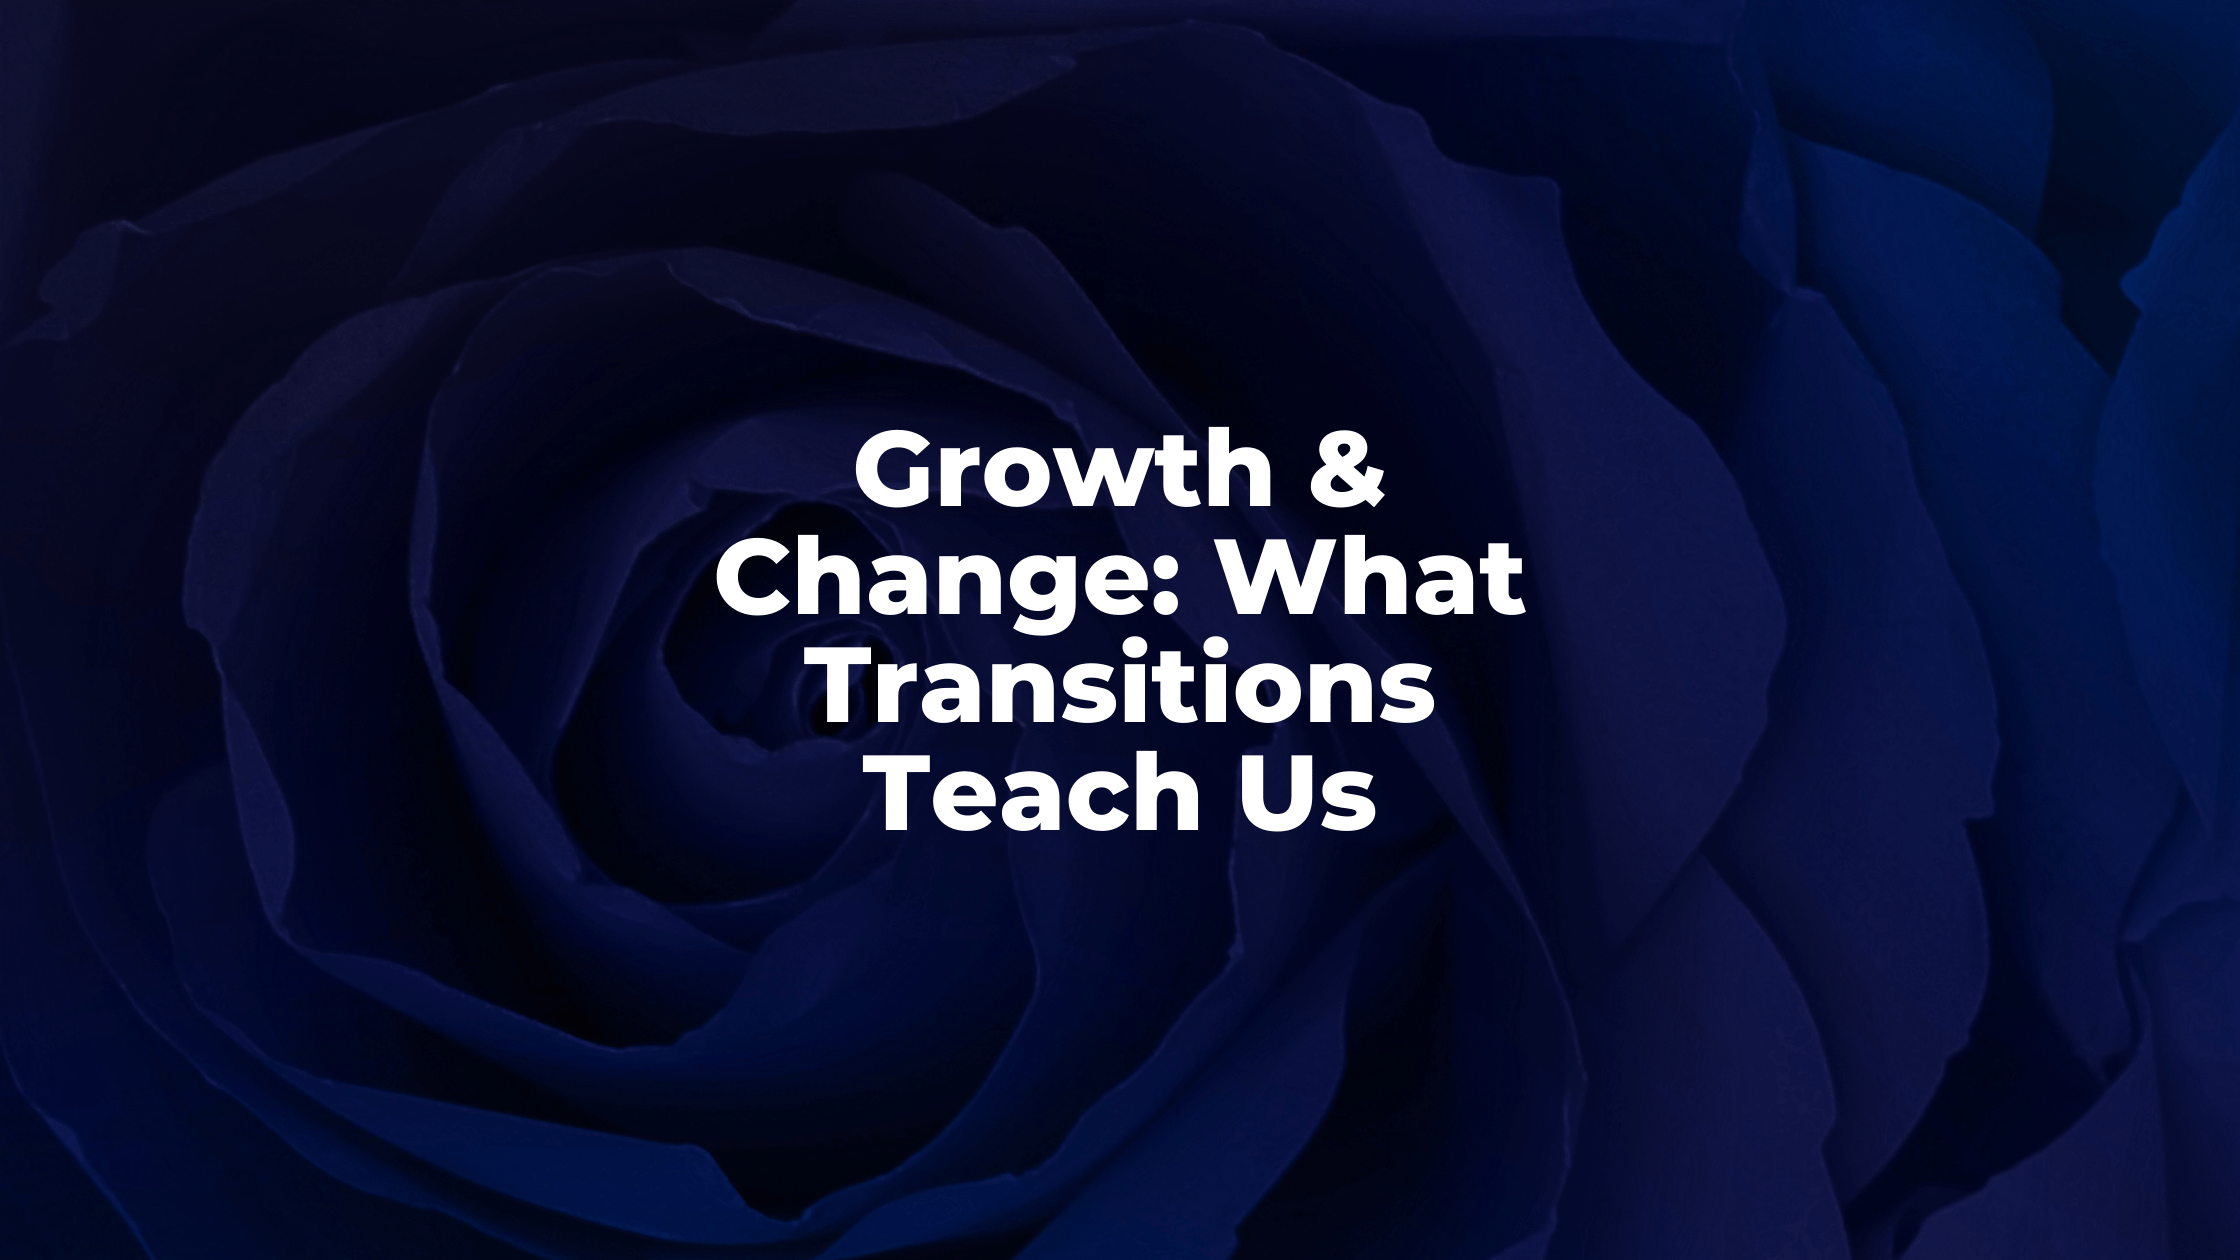 Growth & Change What Transitions Teach Us